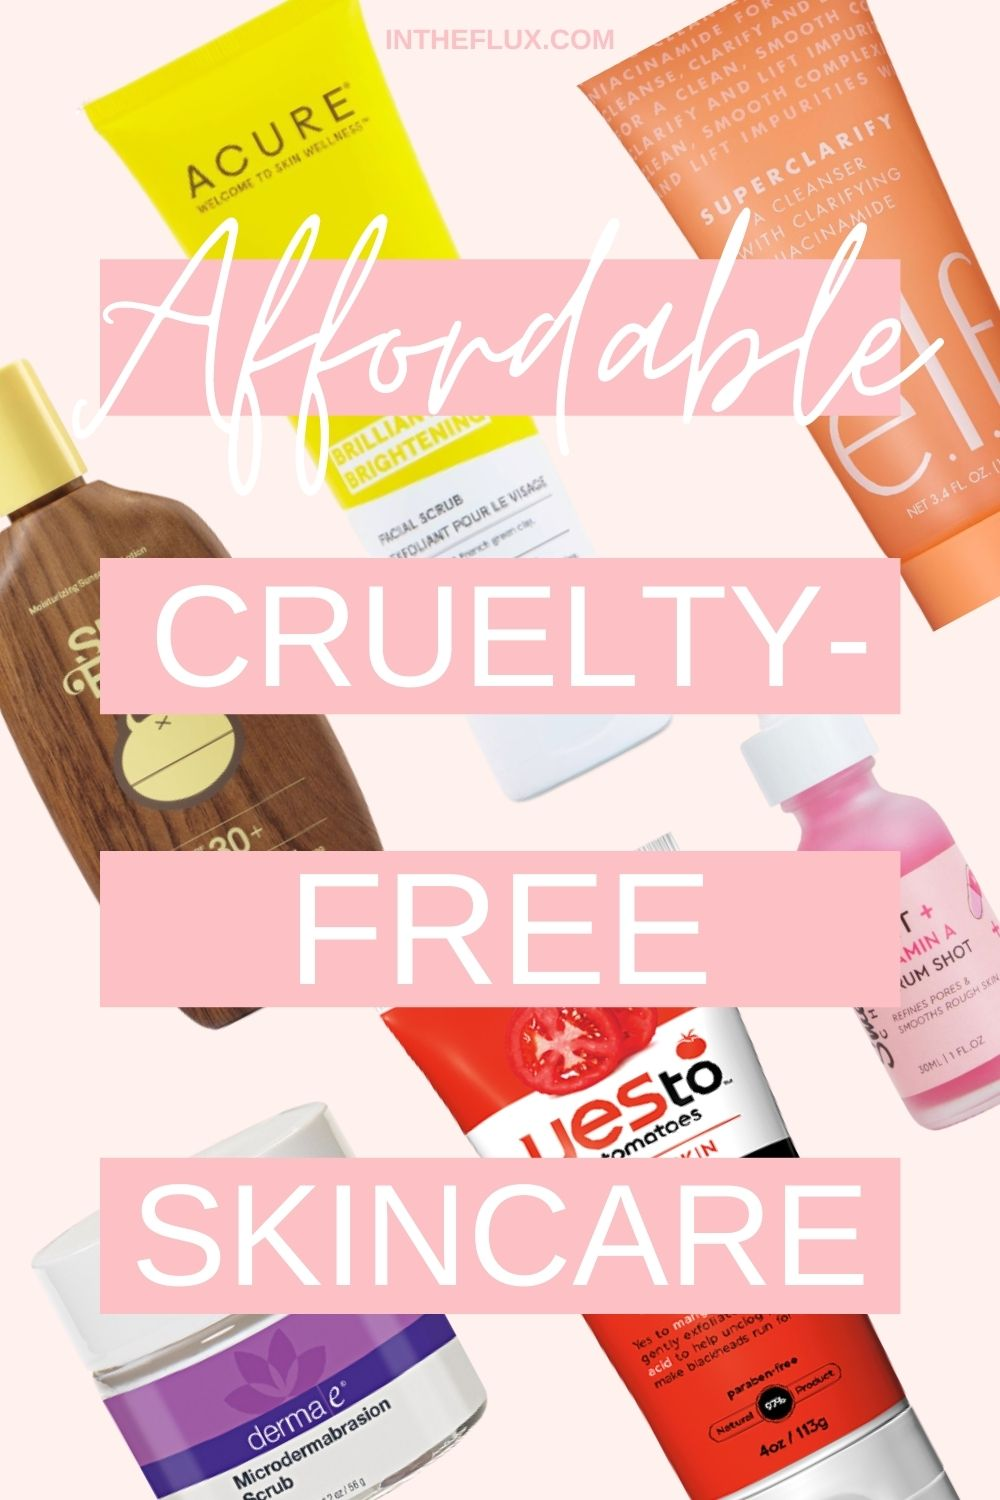 10 Affordable Cruelty-Free SSkincare Brands You Need to Know - Pinterest pin